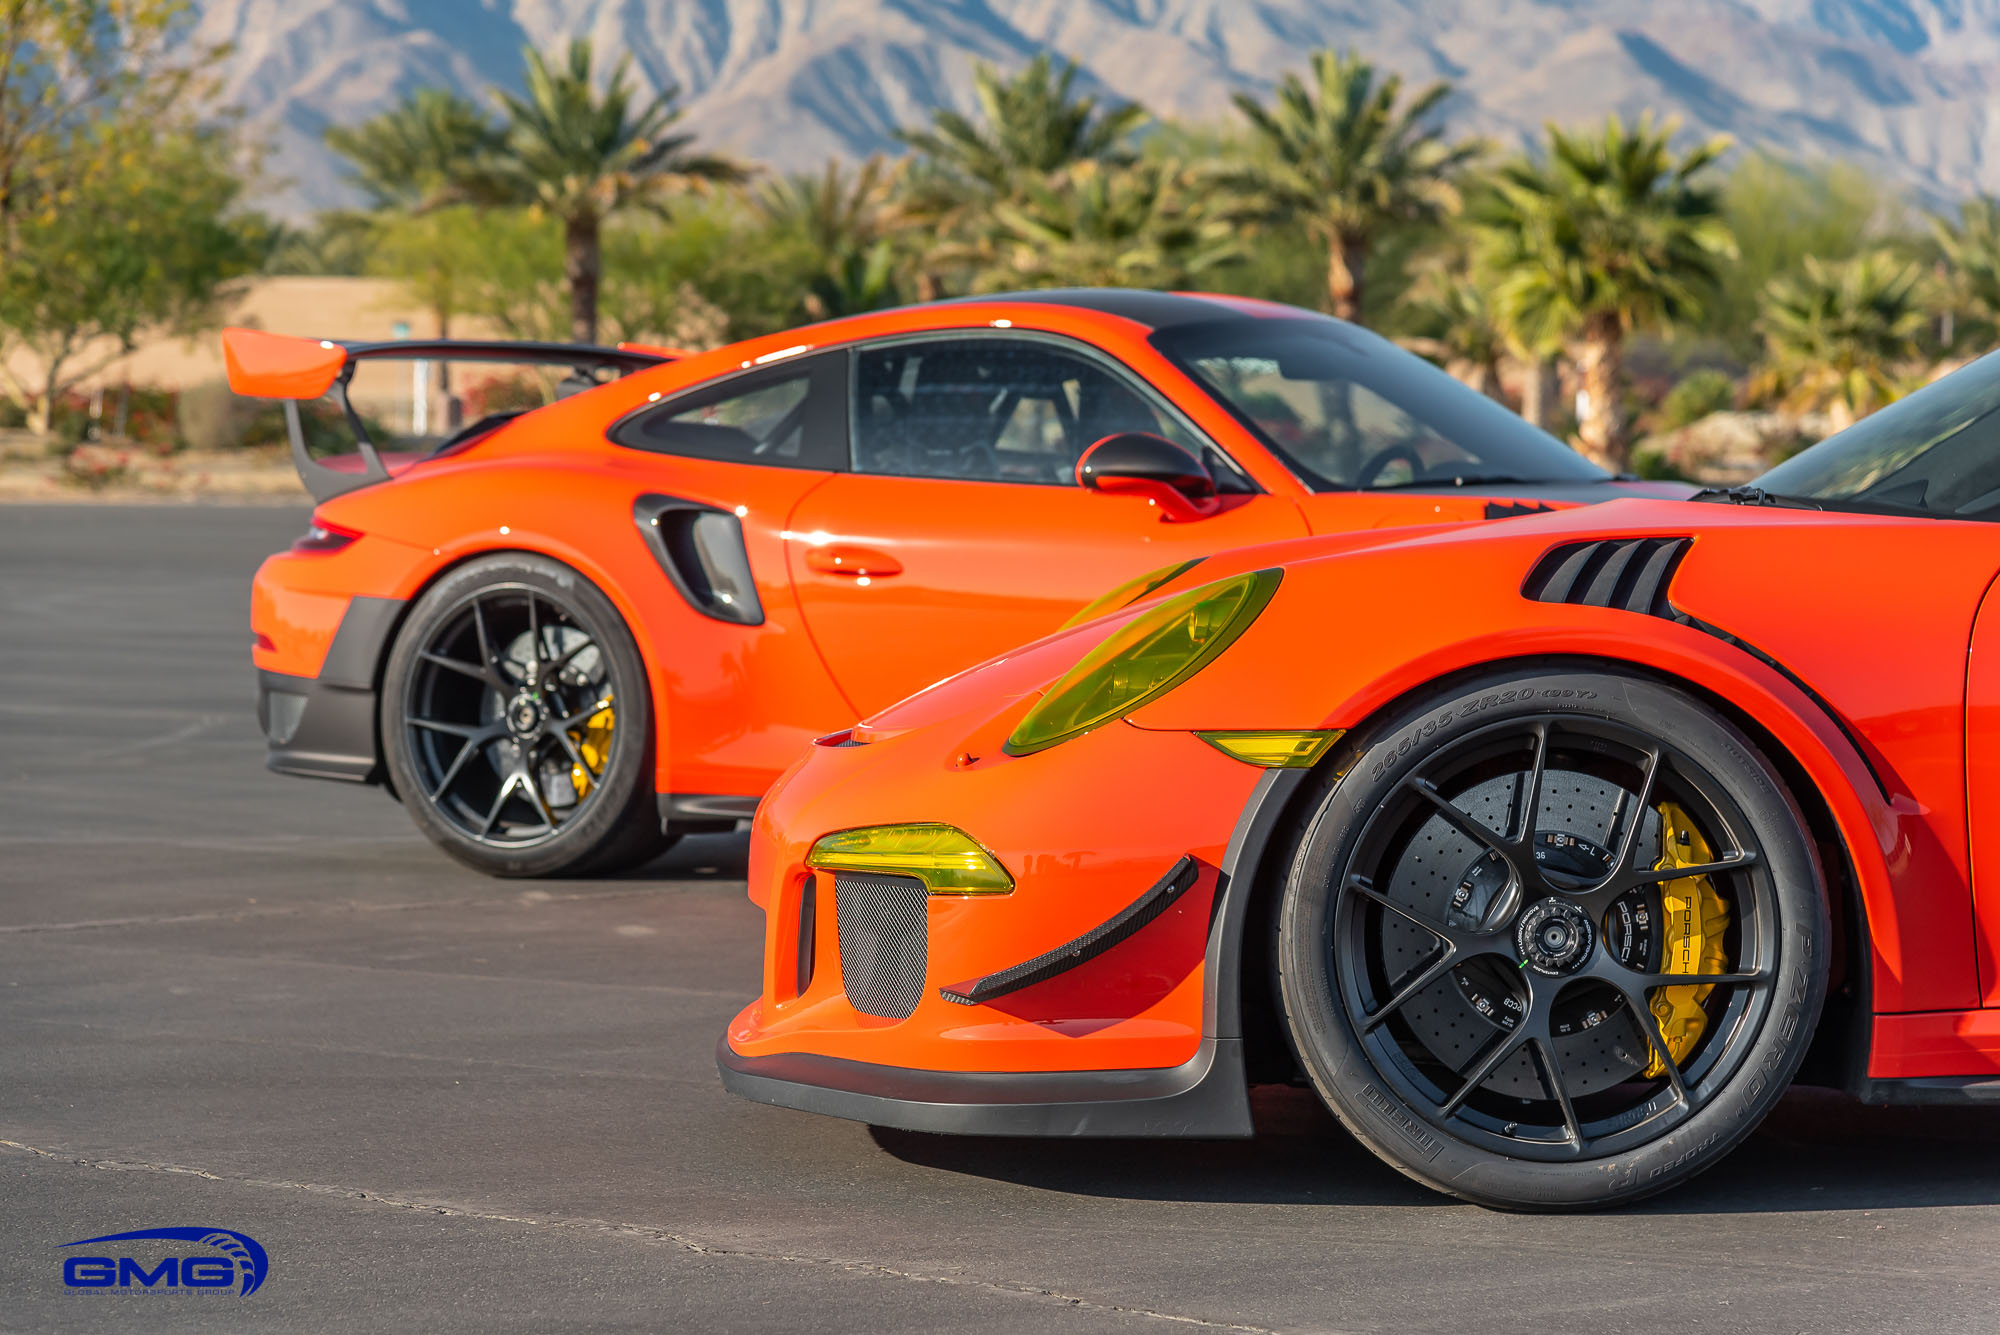 Lava Orange 991.1 Porsche GT3 RS